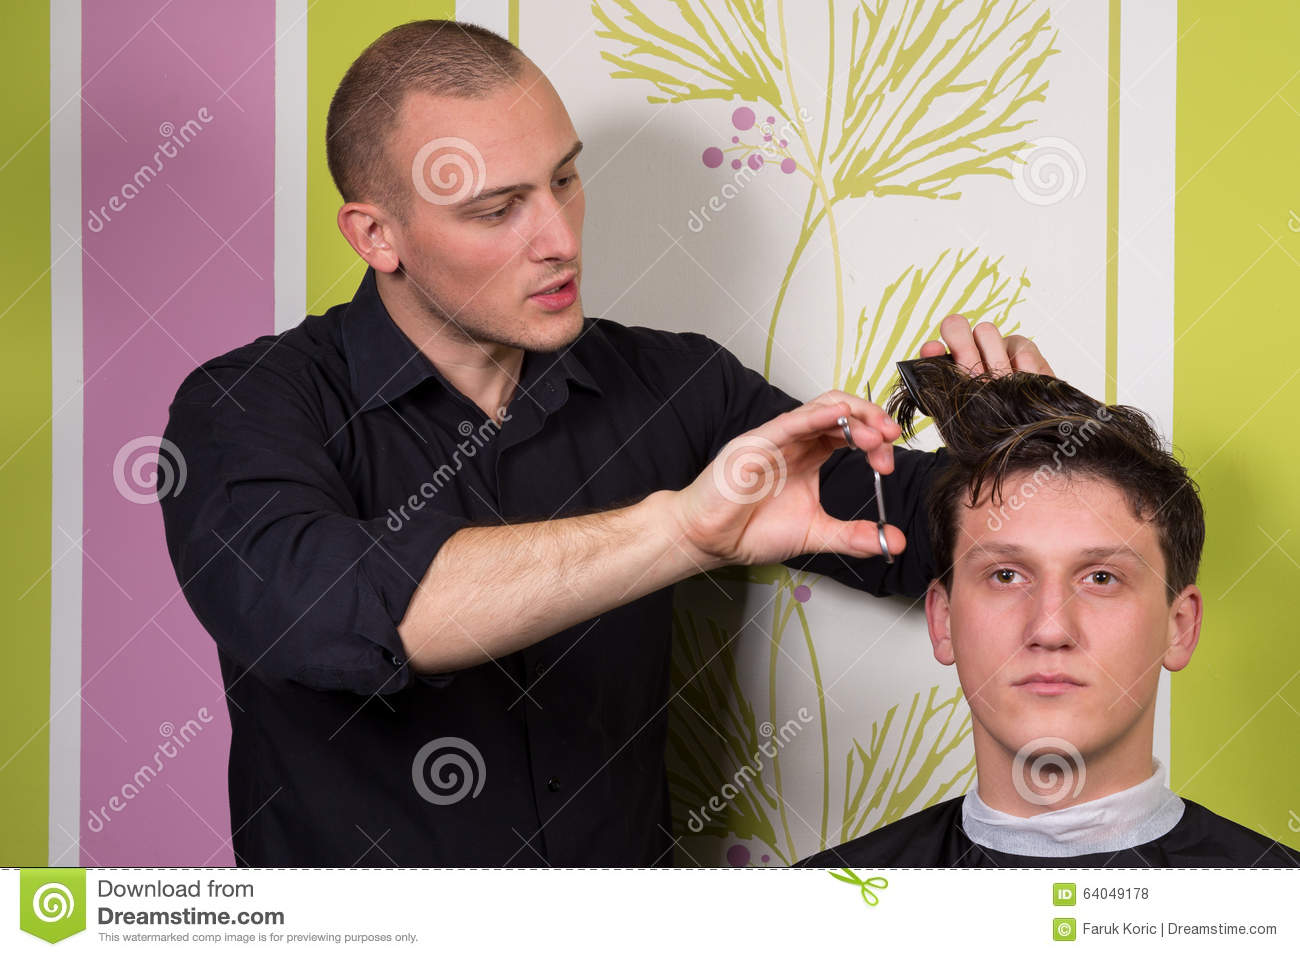 Men s hairstyling and haircutting with hair clipper and scissor